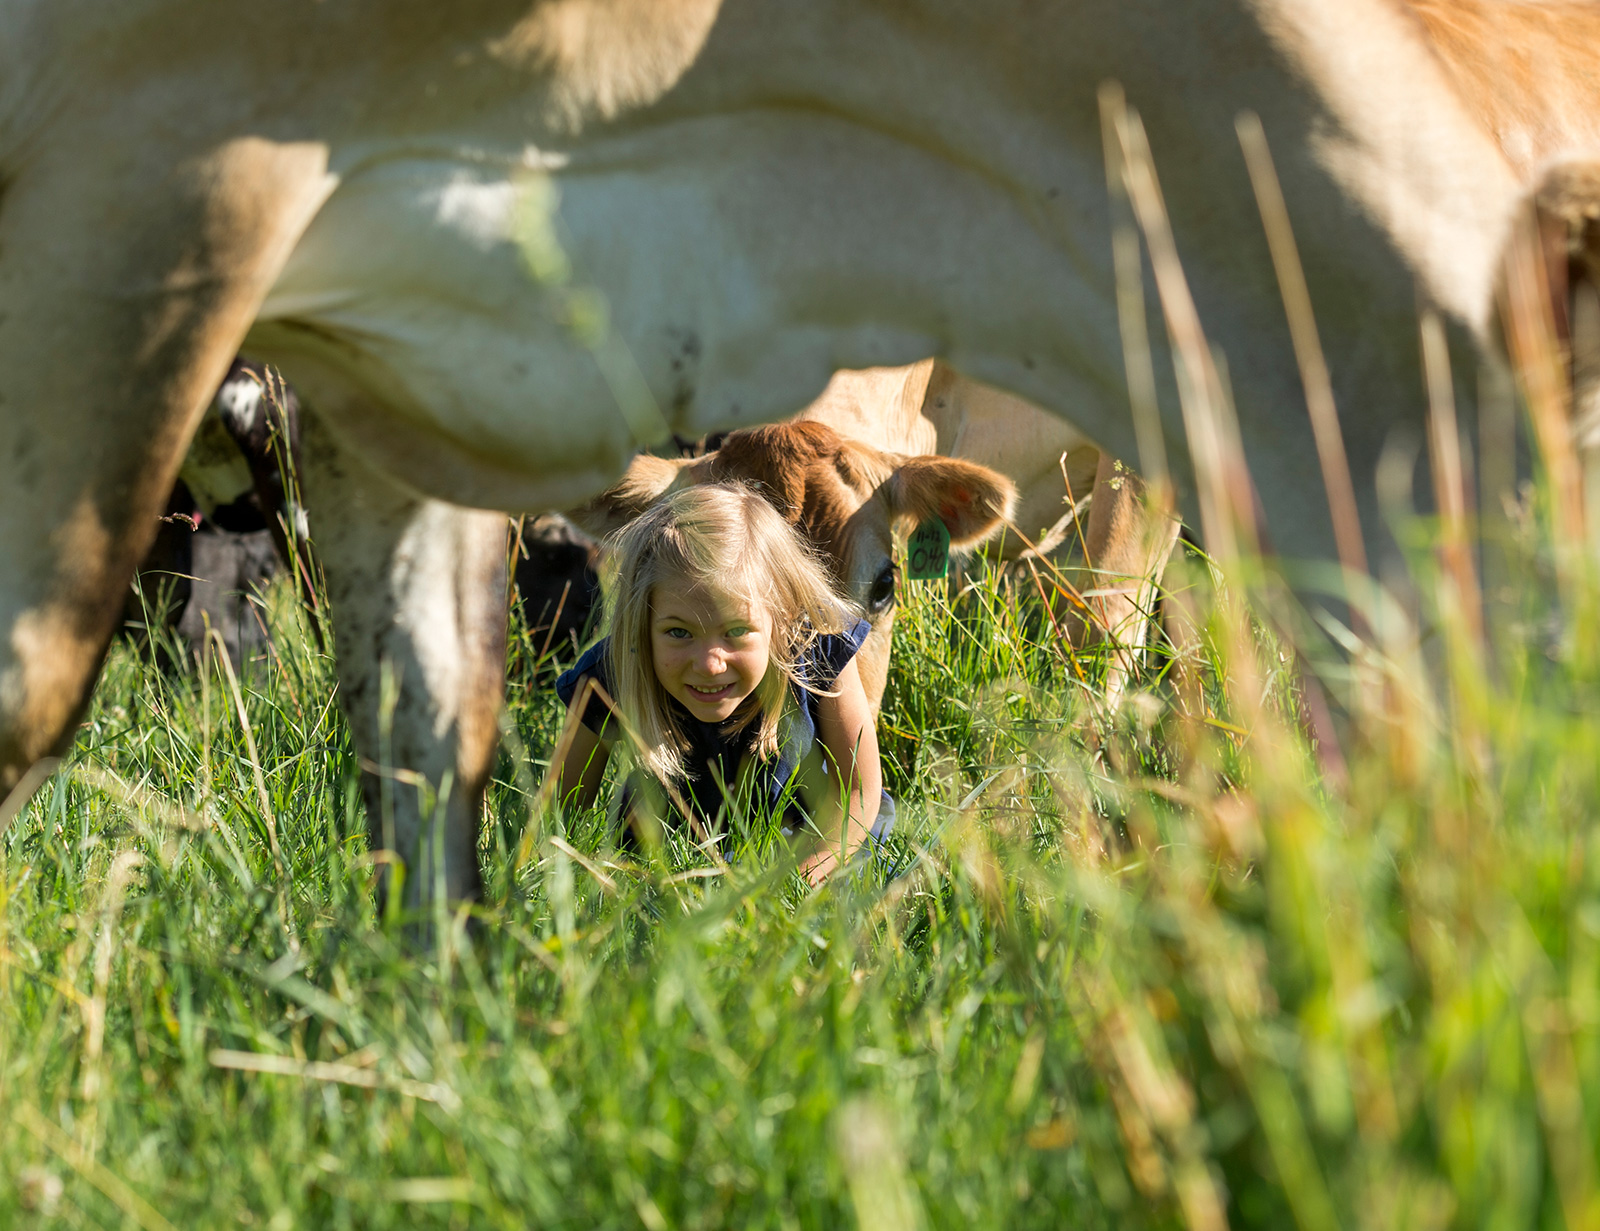 Little girl peeks out from under a cow in a grassy field.